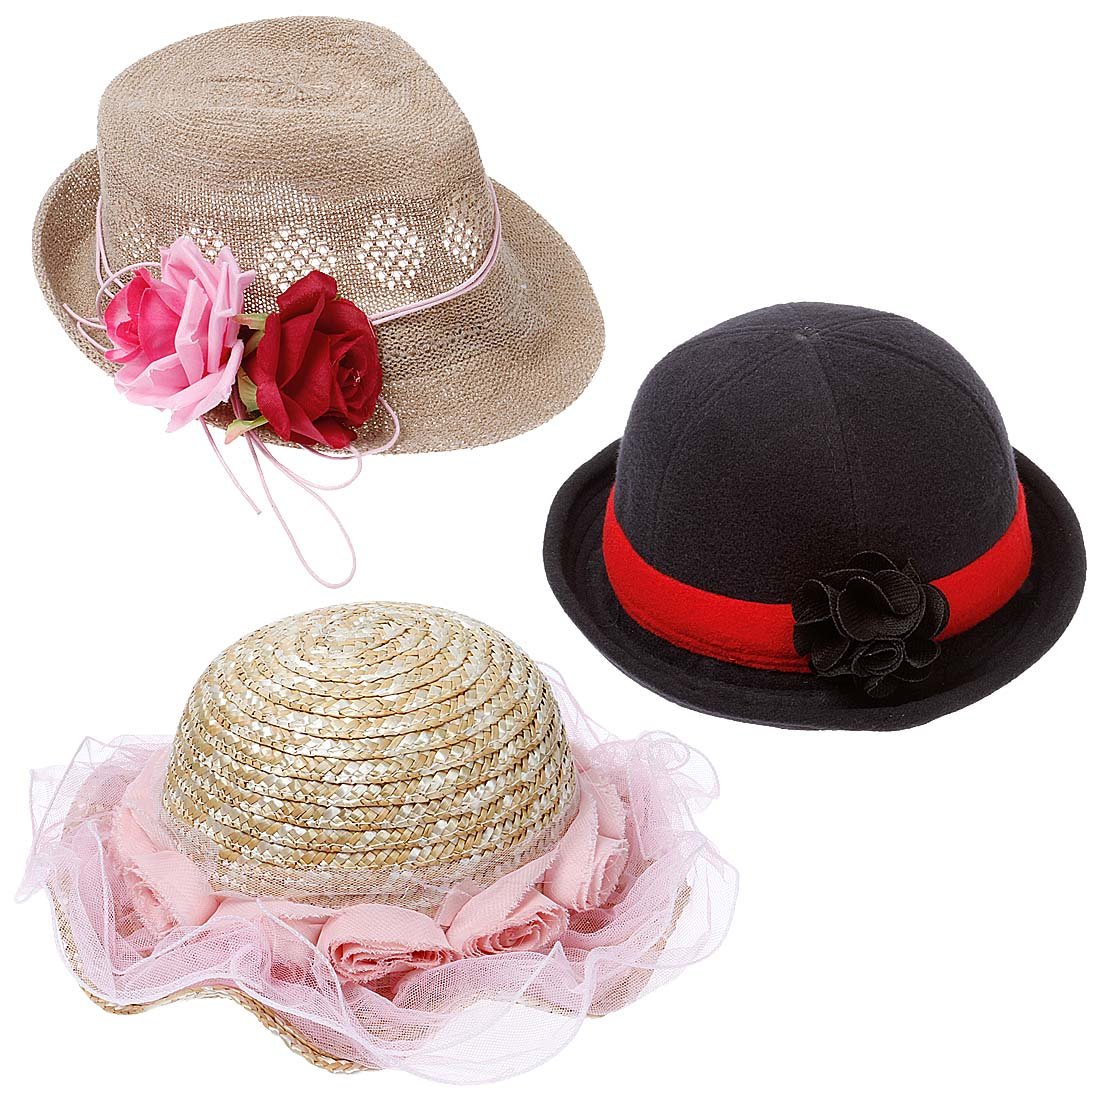 3 pc Baby Girl Toddler Cute Fashion Headwear Accessory Hats - Set 3: Country Cute